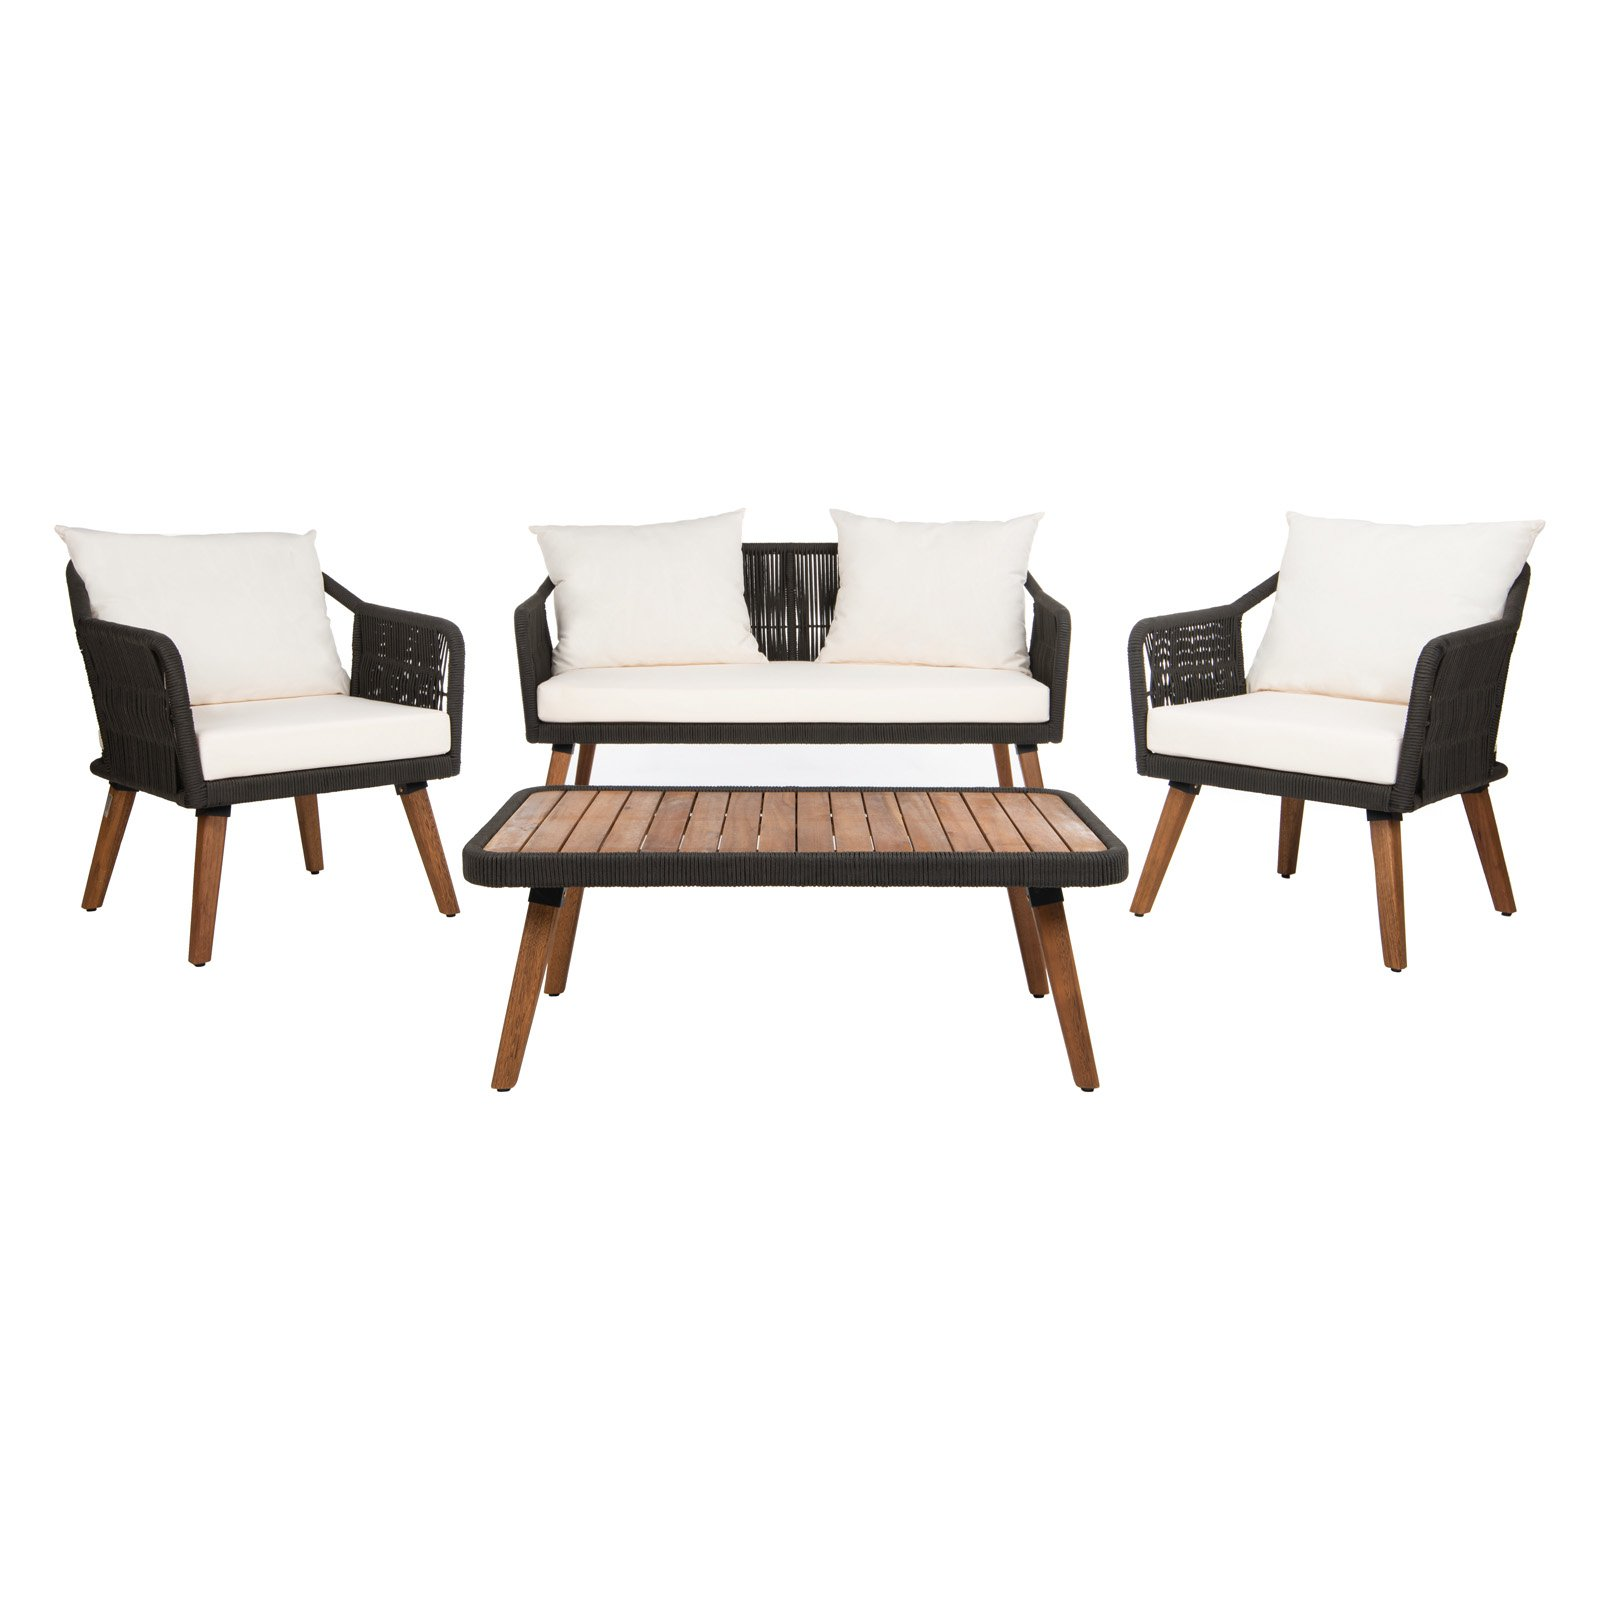 Safavieh Raldin Rope 4 Piece Patio Conversation Set ... on Safavieh Raldin  id=22049